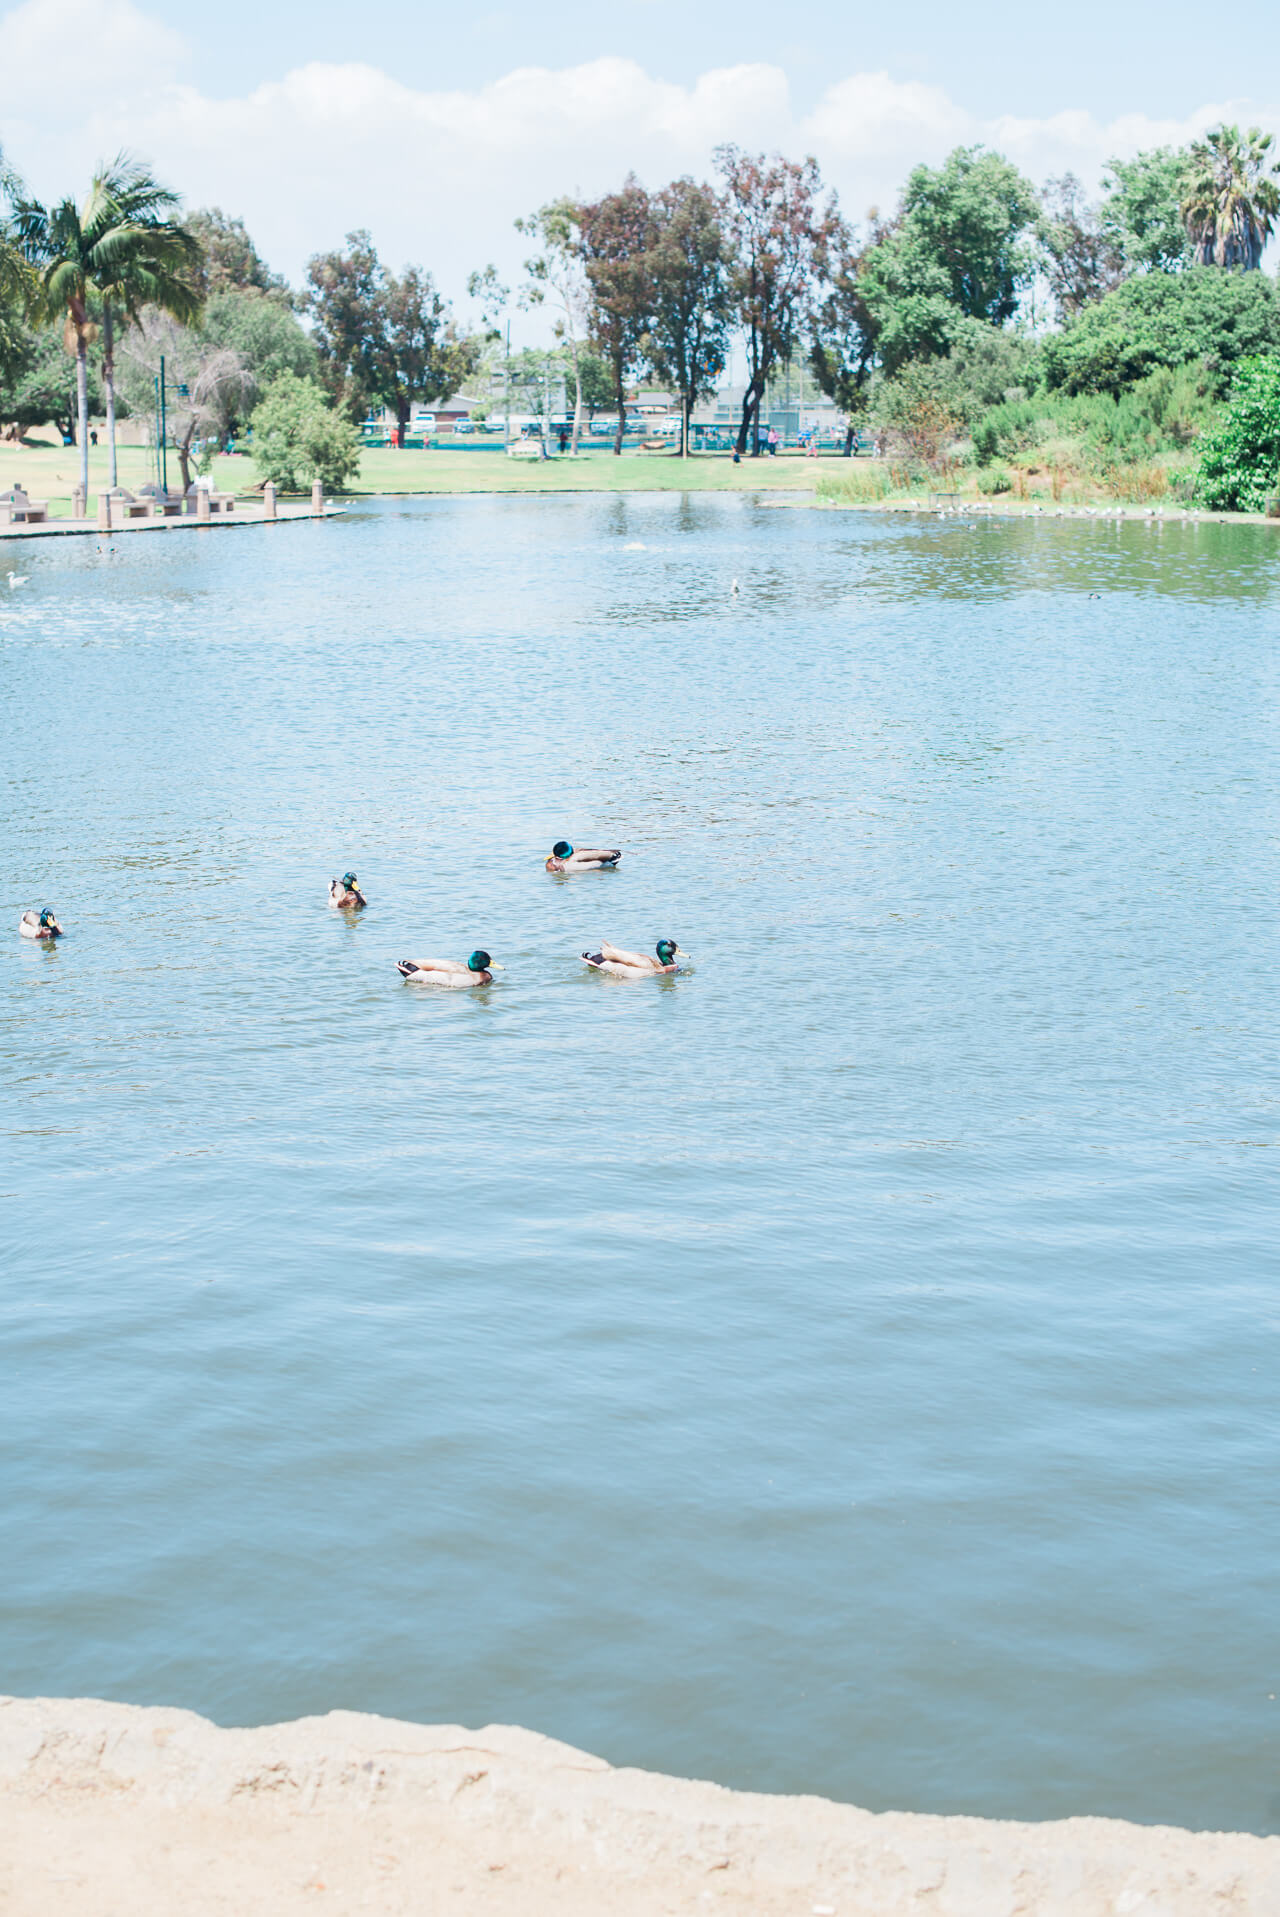 ducks at Polliwog Park in Manhattan Beach